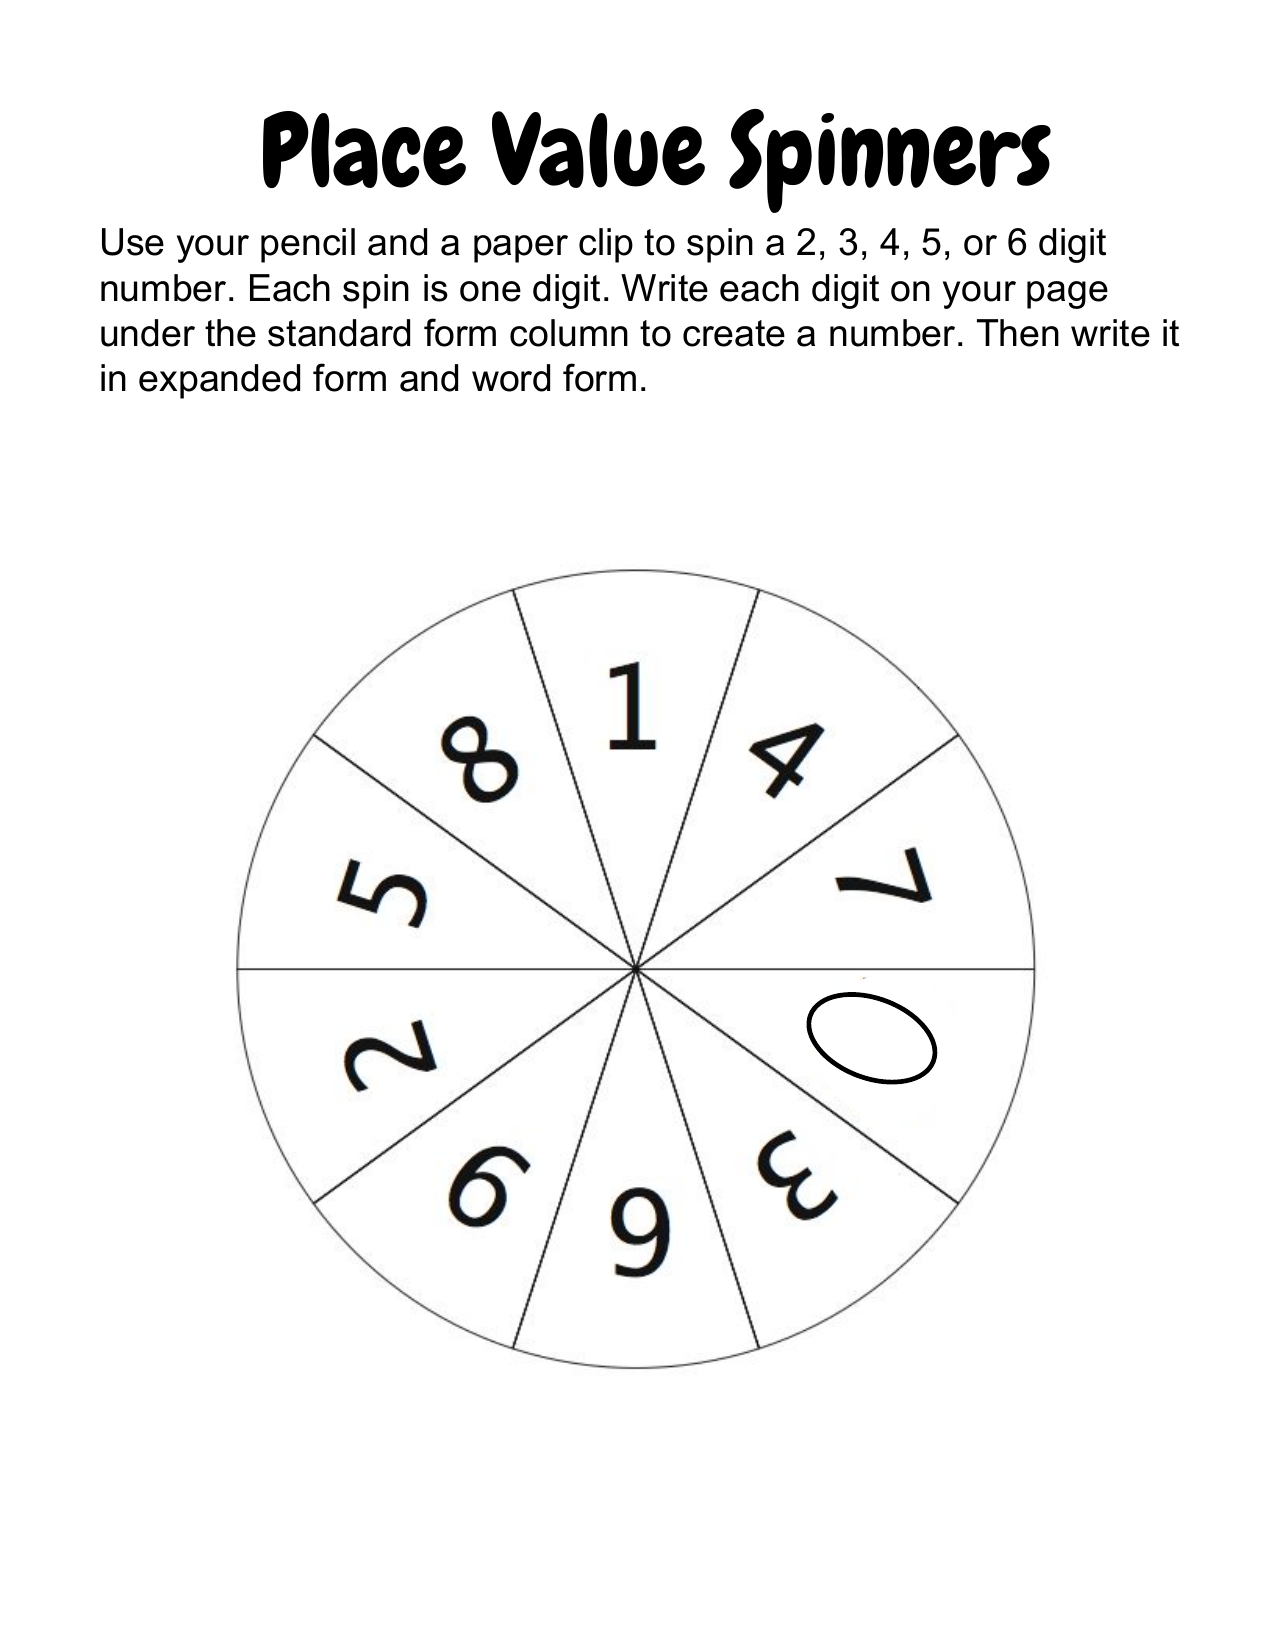 Place Value Spinners Resource Preview